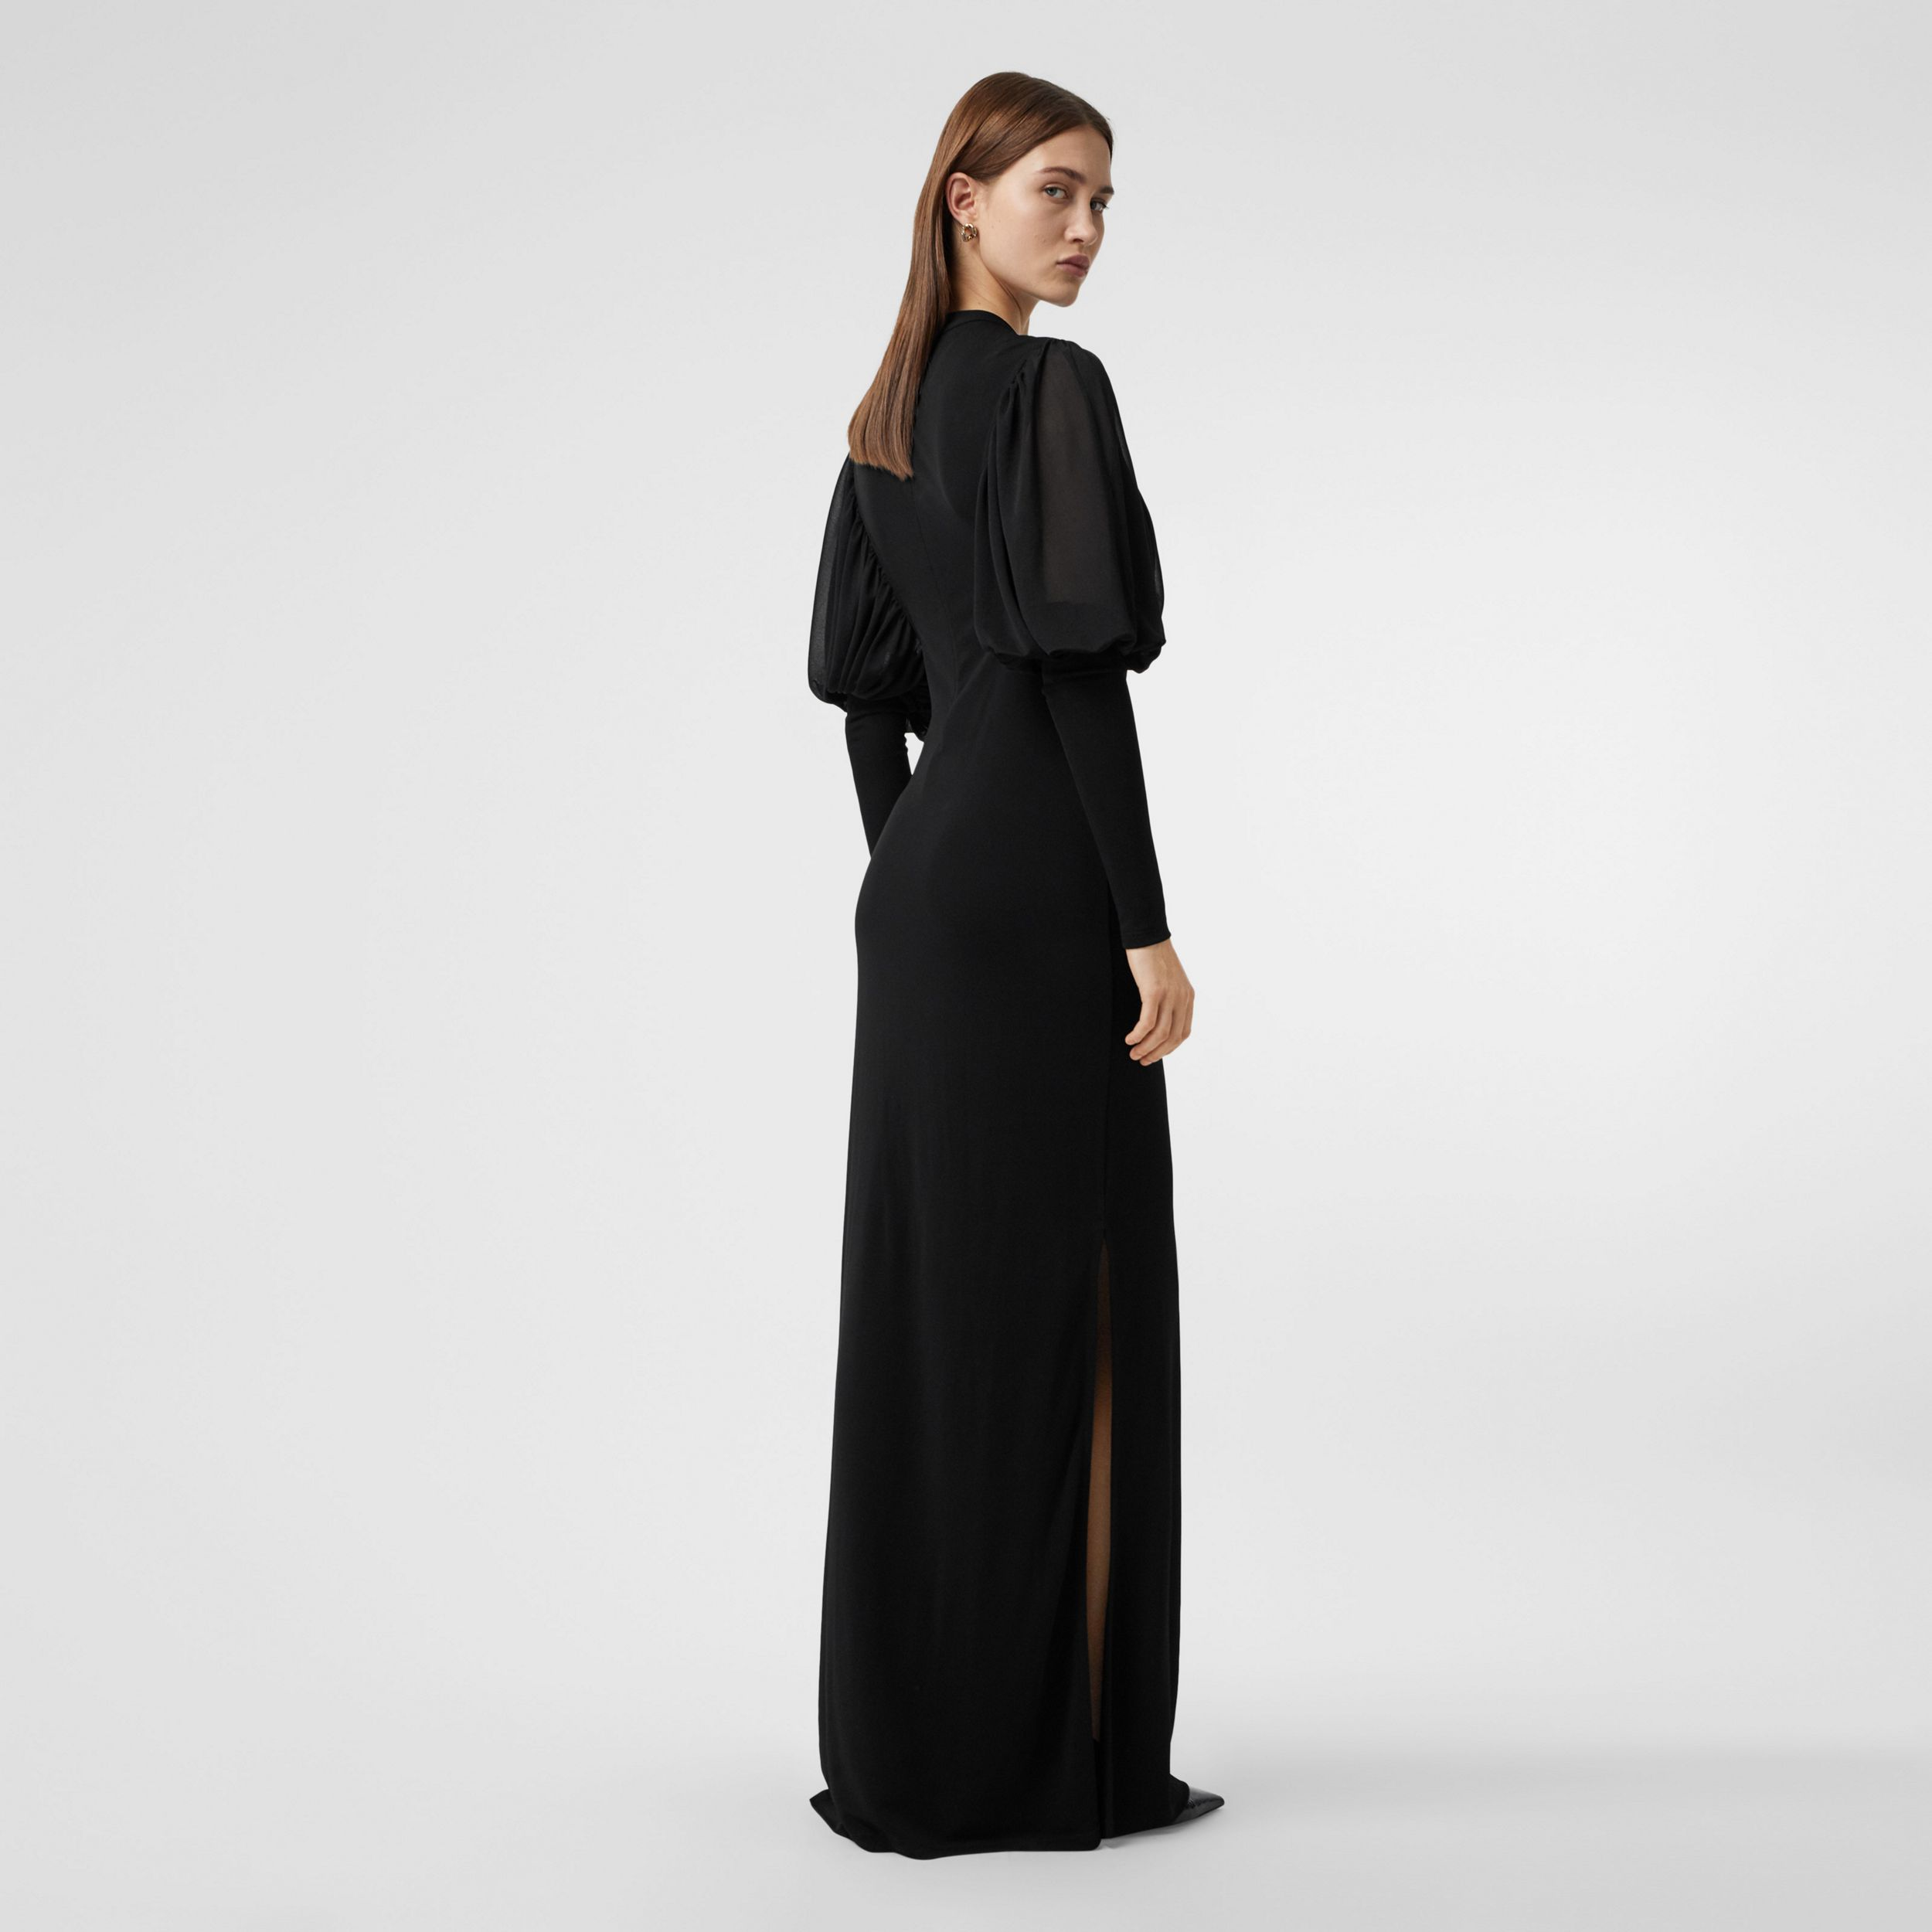 Puff-sleeve Jersey Gown in Black - Women | Burberry Hong Kong S.A.R. - 3